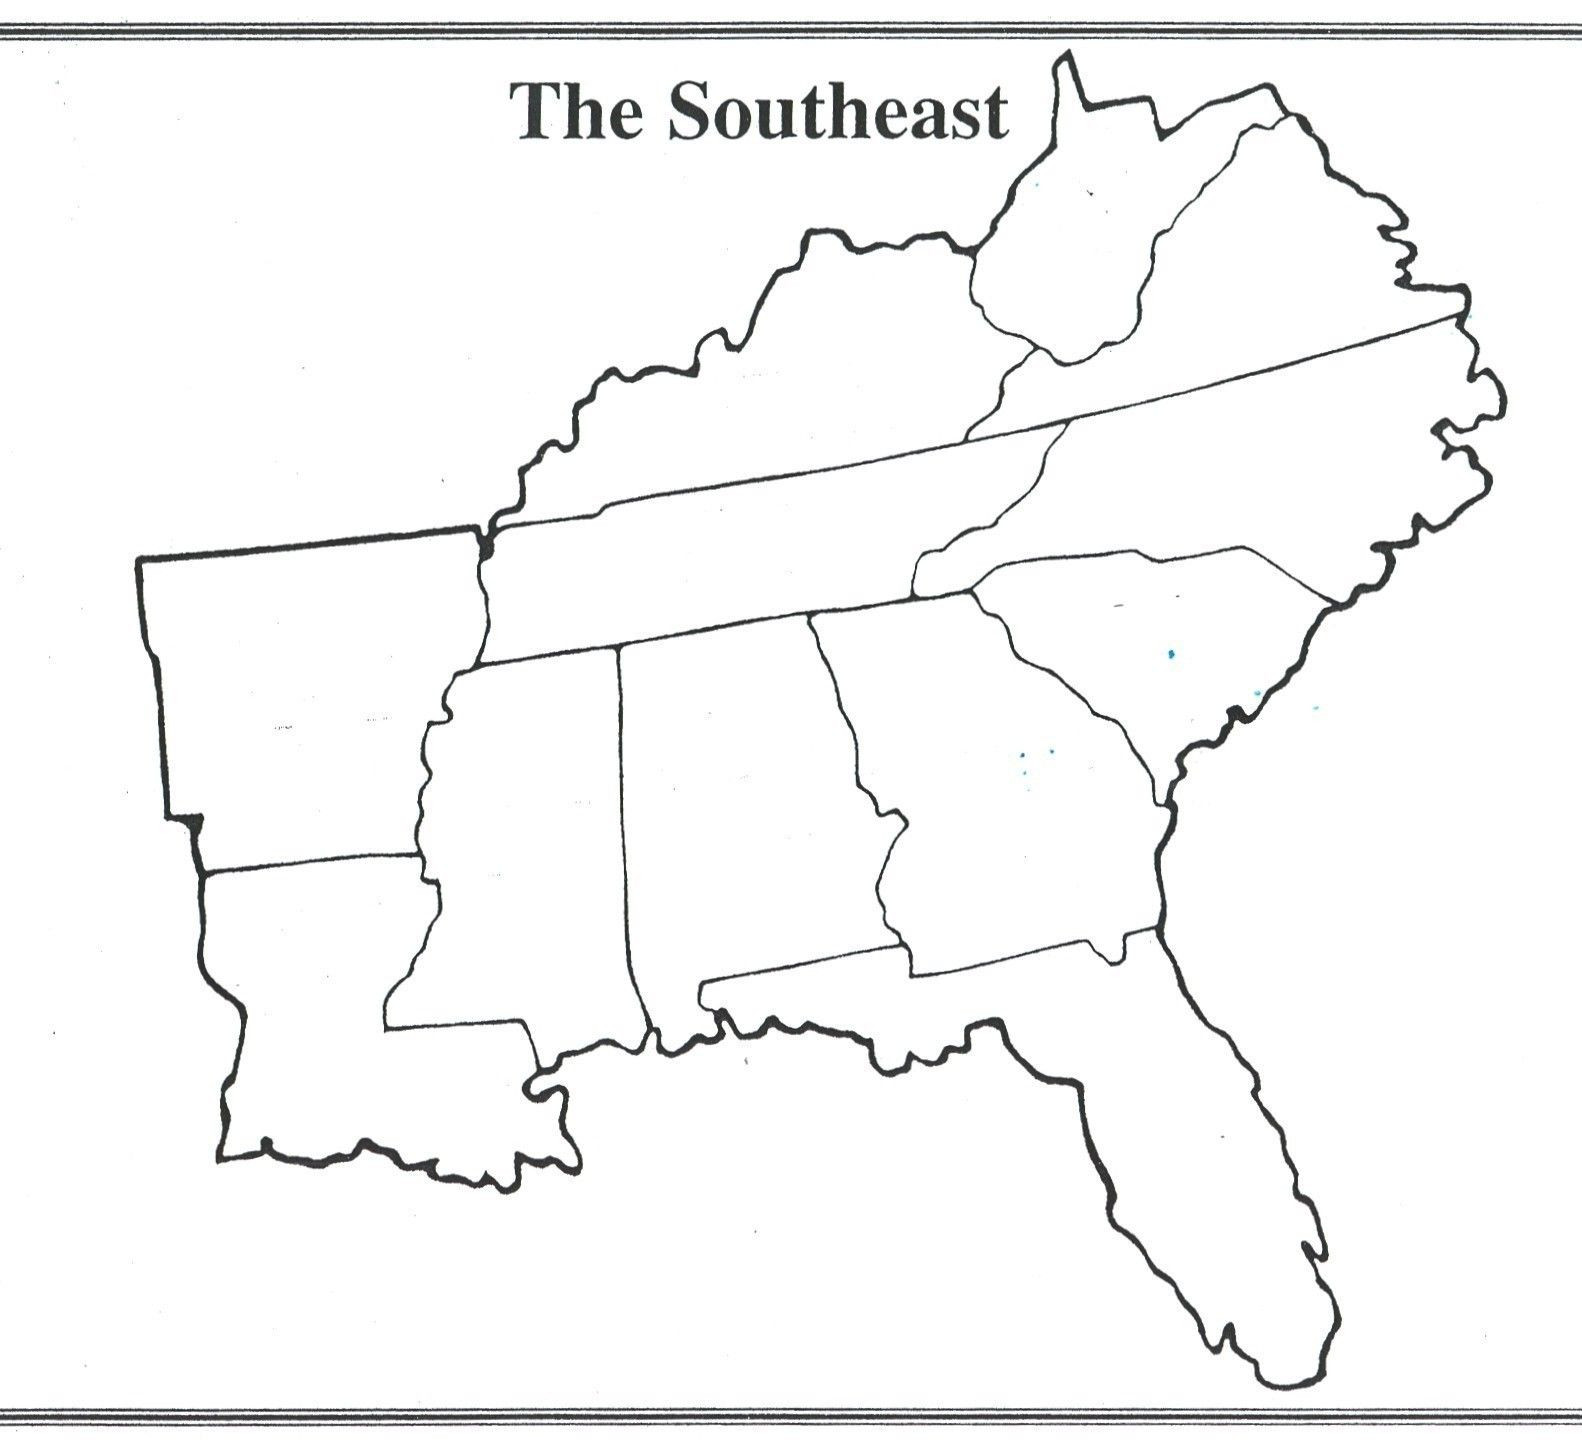 State Capitals Printable Quiz Interesting Blank Us Map Quiz Printable south Eastern States